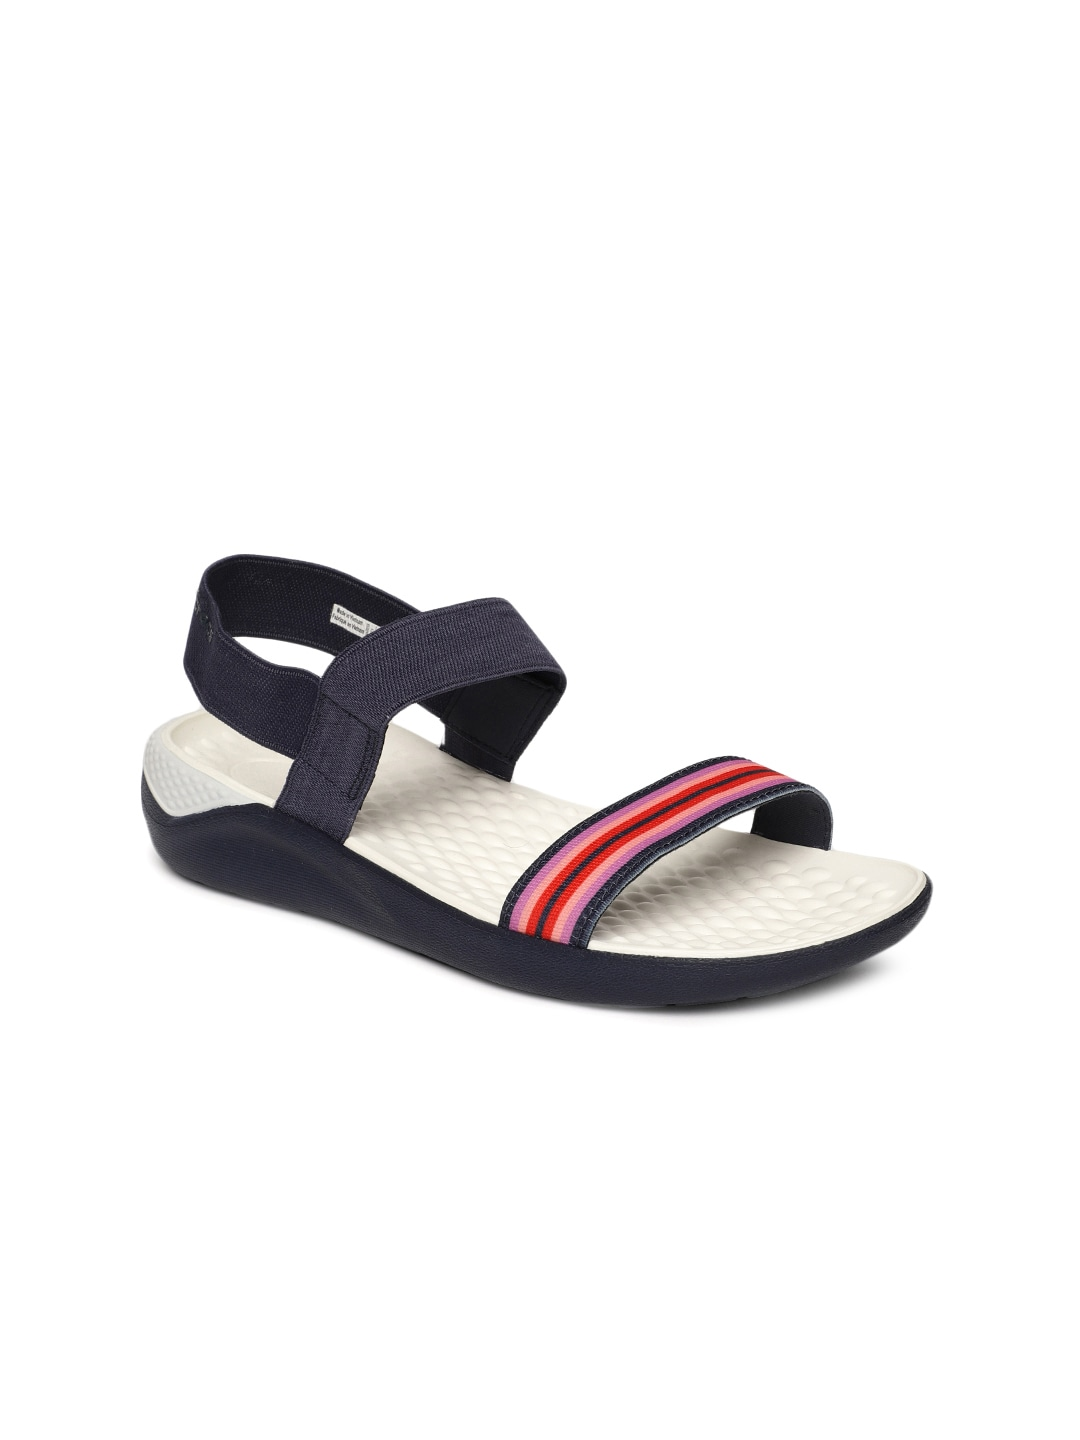 4582e4cbfd7c Crocs Shoes Online - Buy Crocs Flip Flops   Sandals Online in India - Myntra